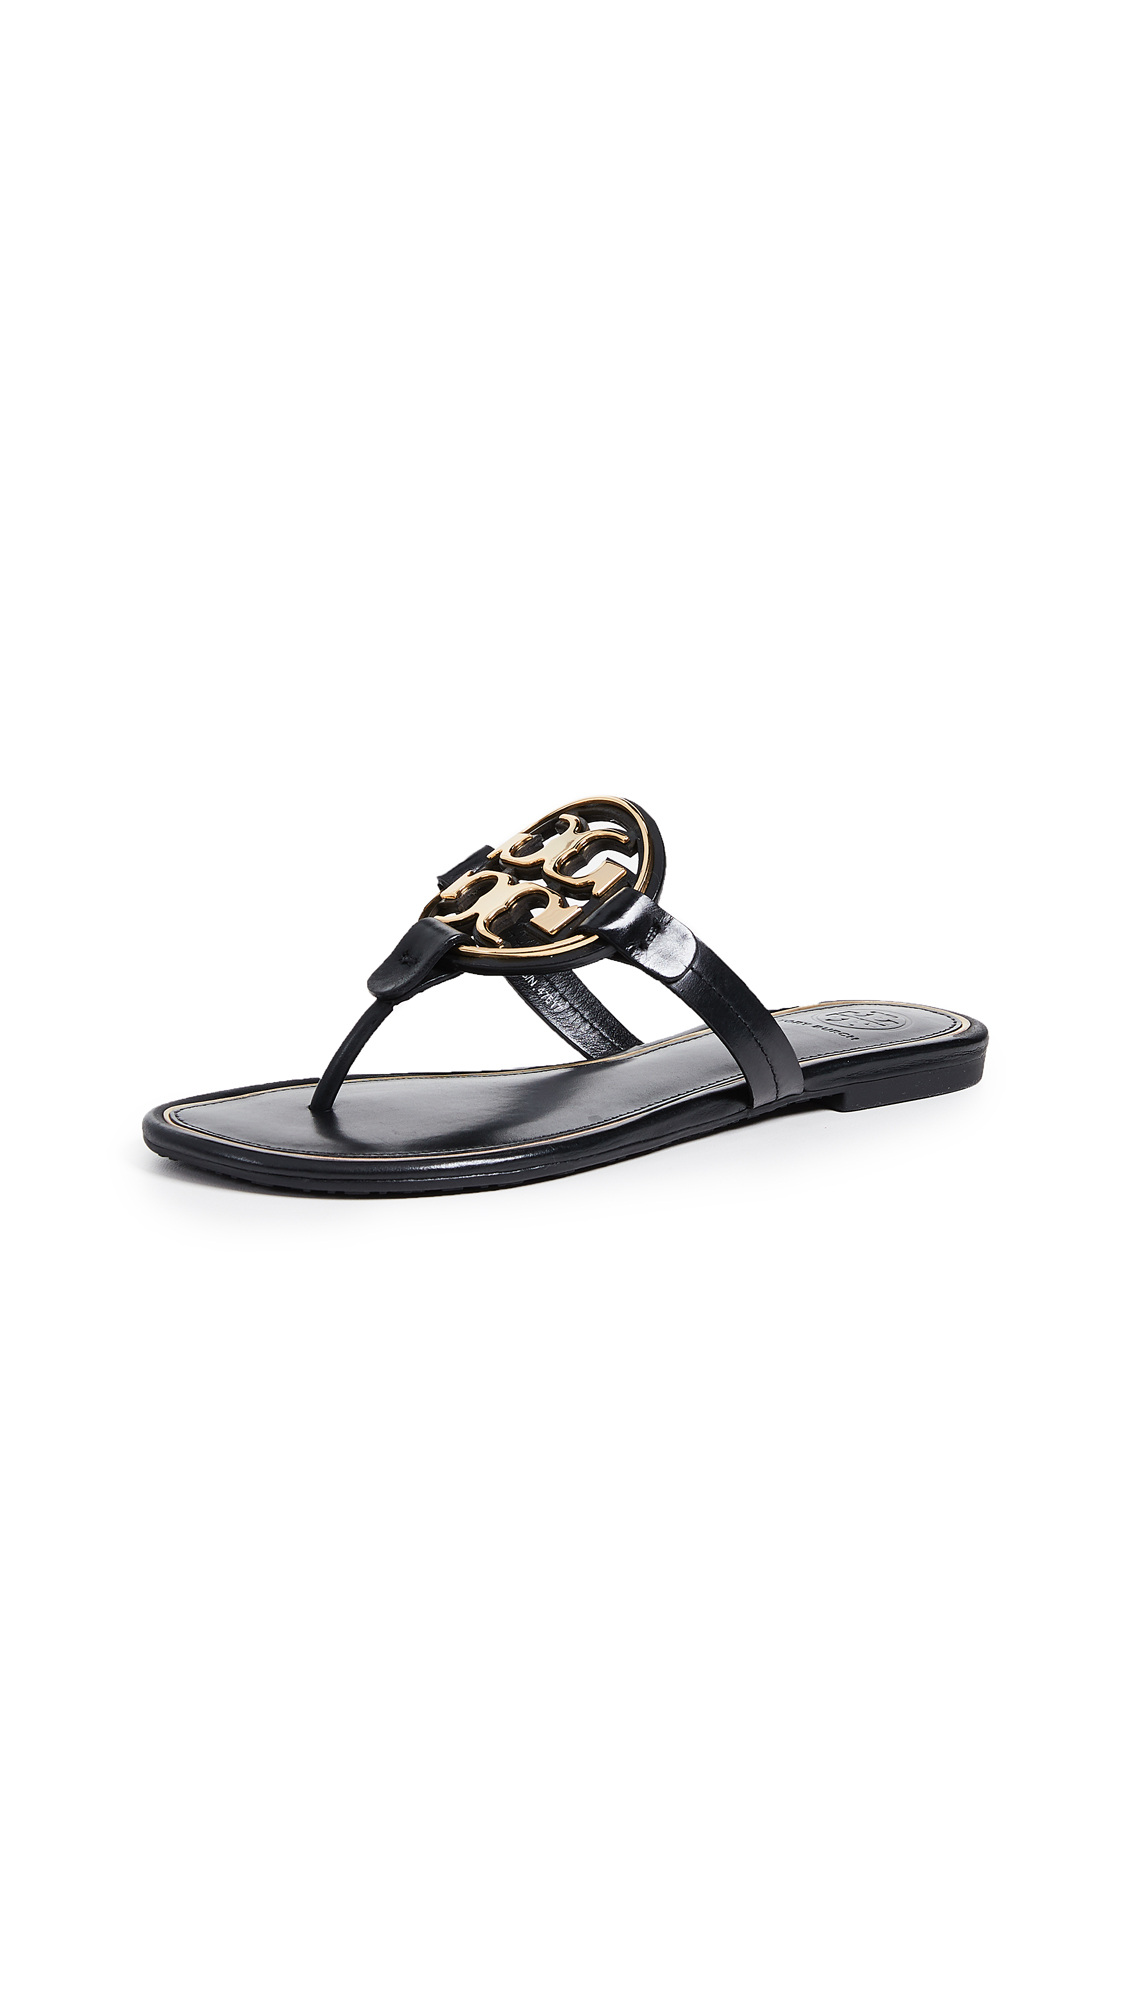 Tory Burch Miller Metal Thong Sandals - Perfect Black/Gold